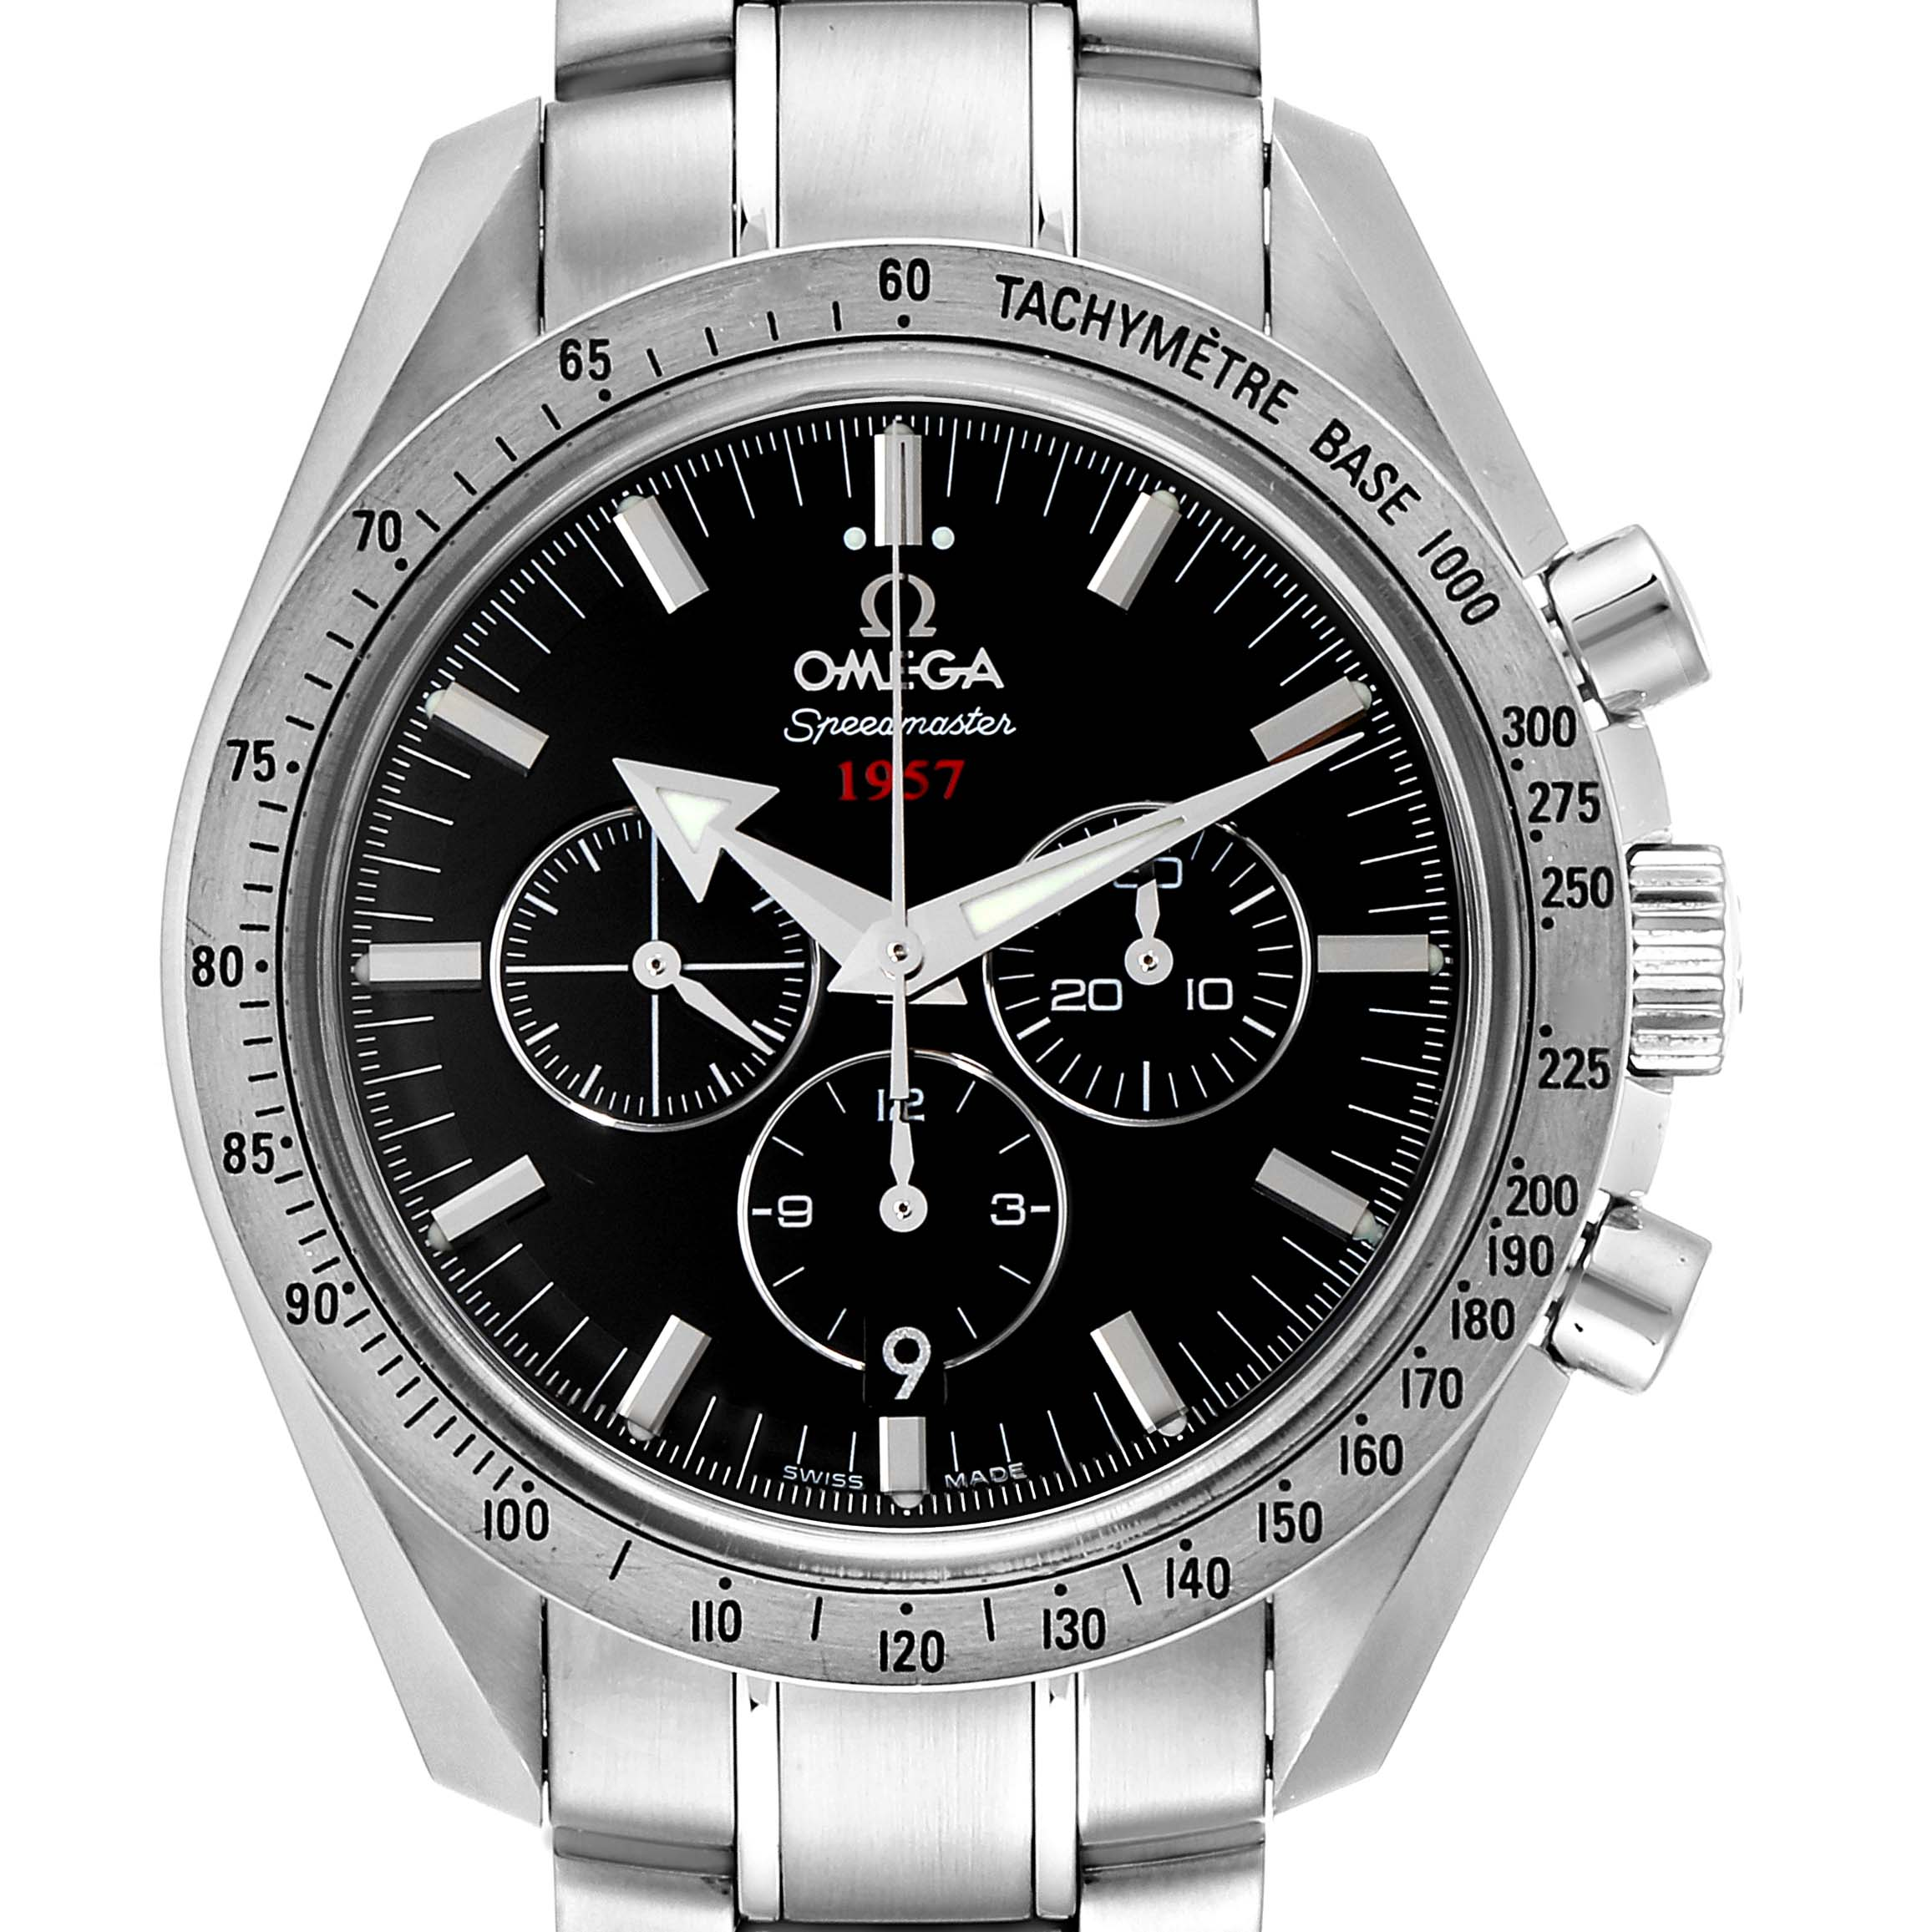 Omega Speedmaster Broad Arrow 1957 Watch 321.10.42.50.01.001 SwissWatchExpo